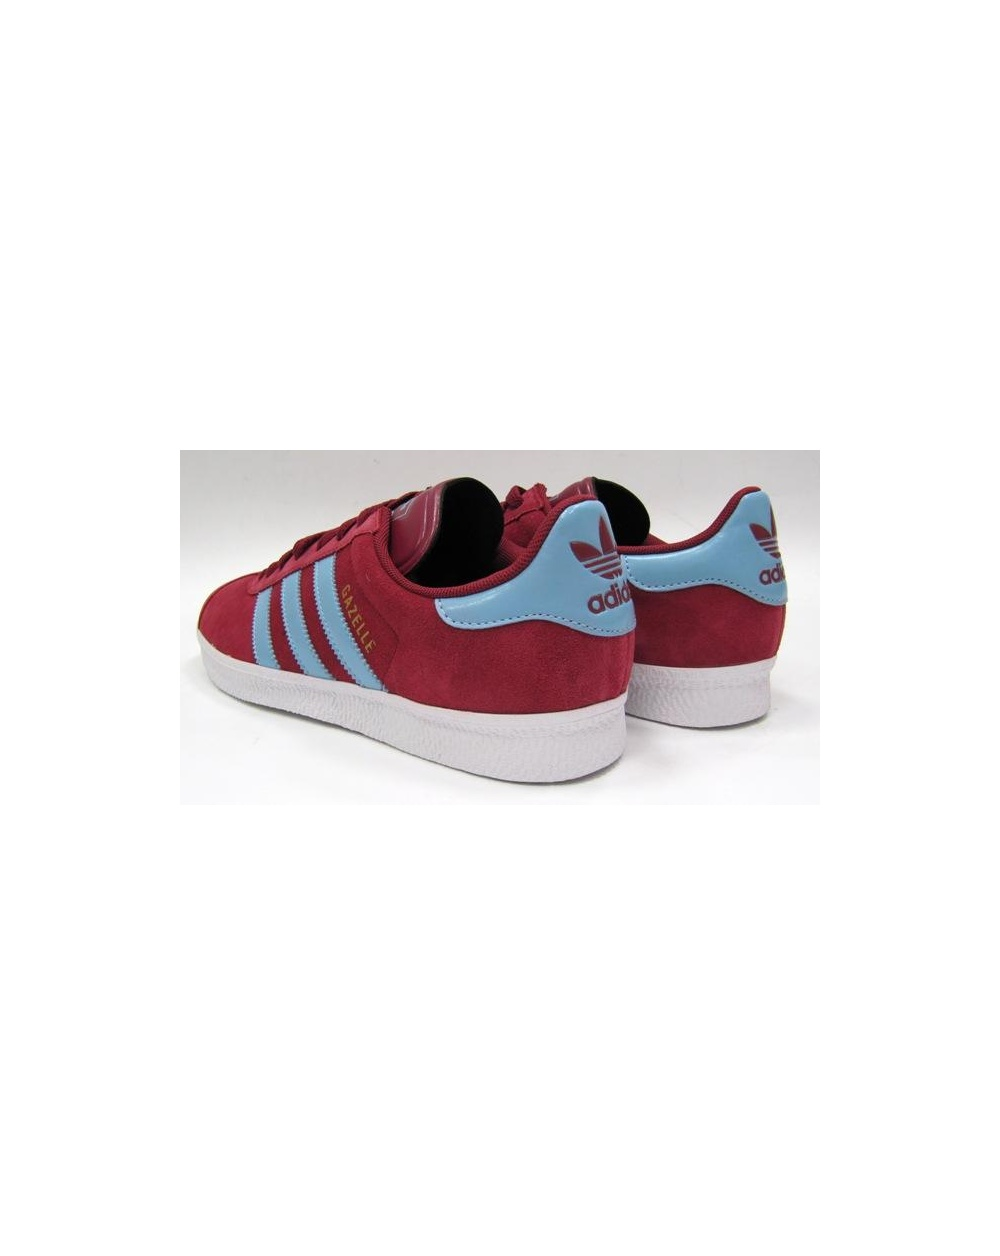 Adidas Gazelle Trainers Uk